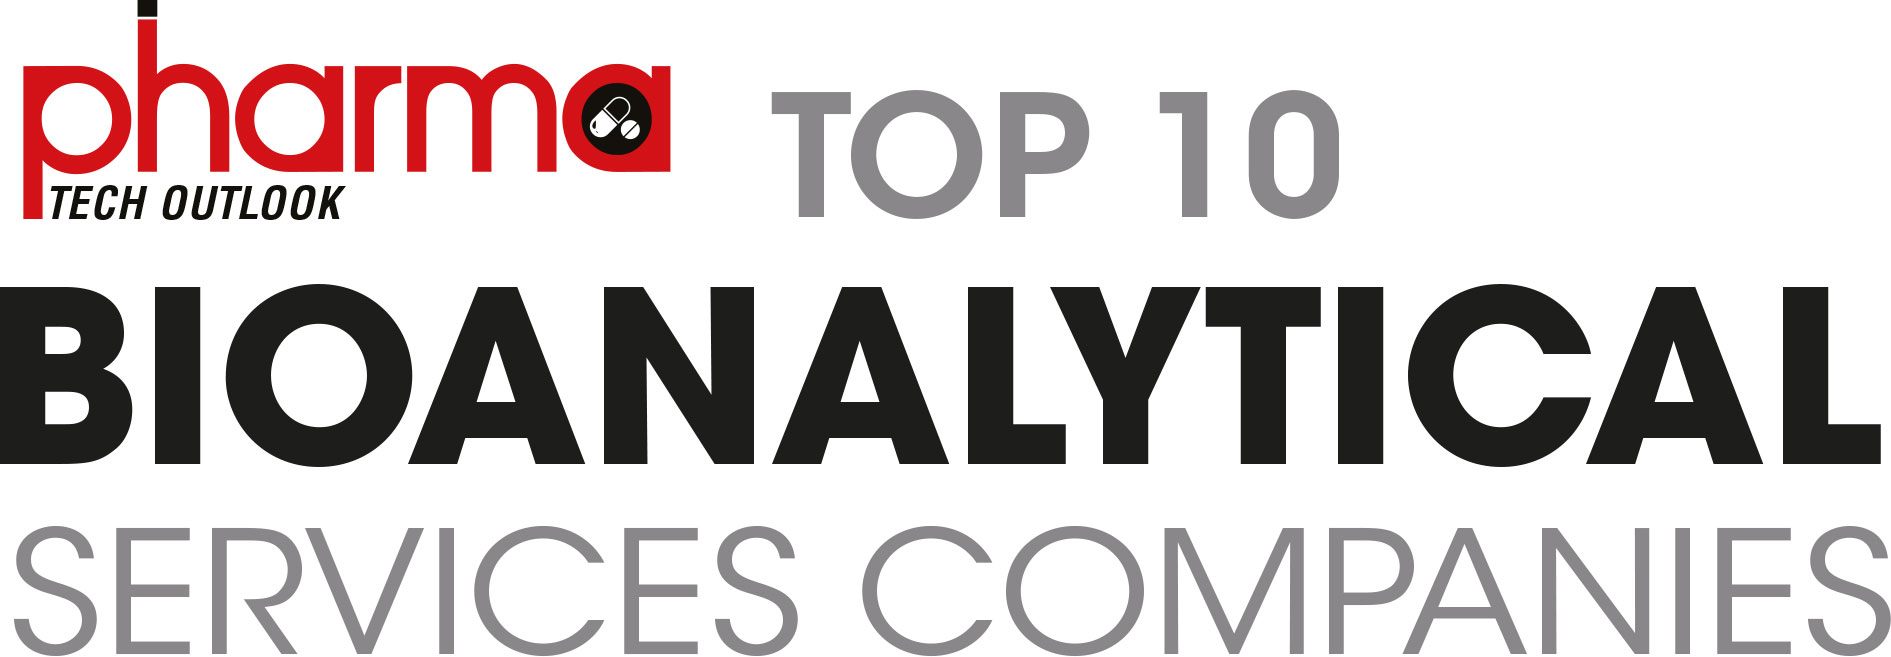 Top Bioanalytical Services Companies